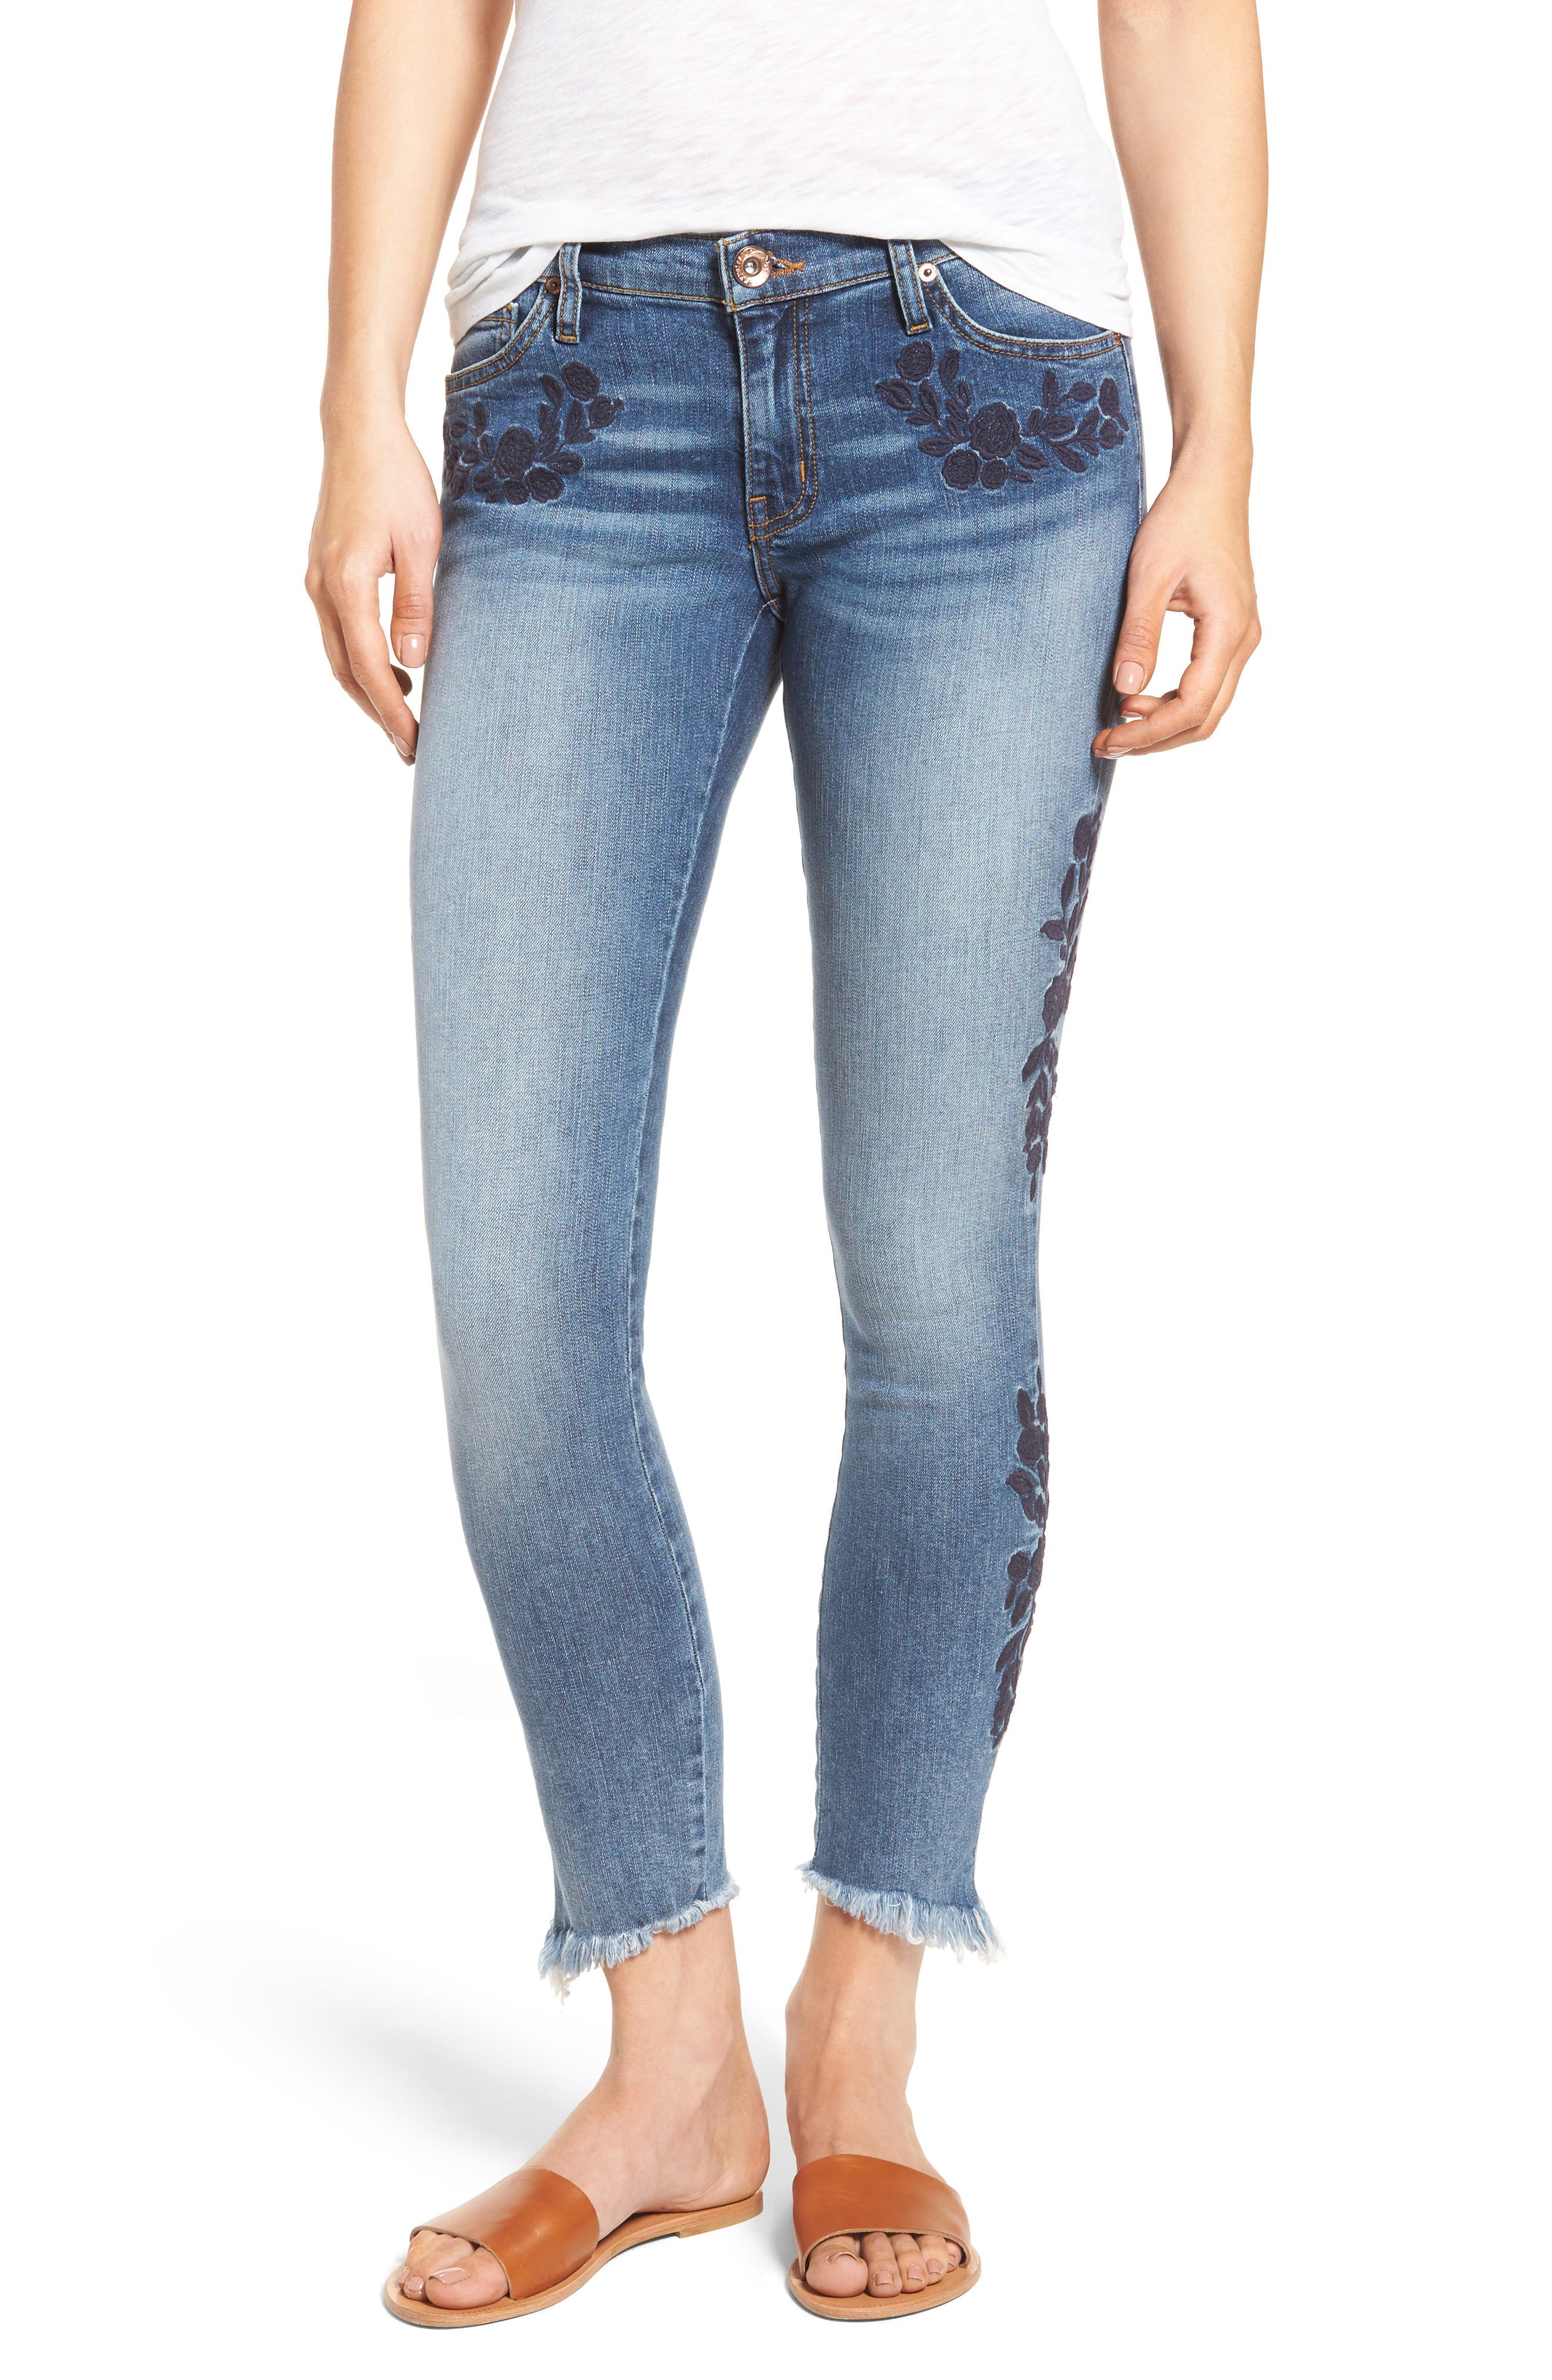 Main Image - Band of Gypsies Lola Embroidered Ankle Jeans (Boogaloo)